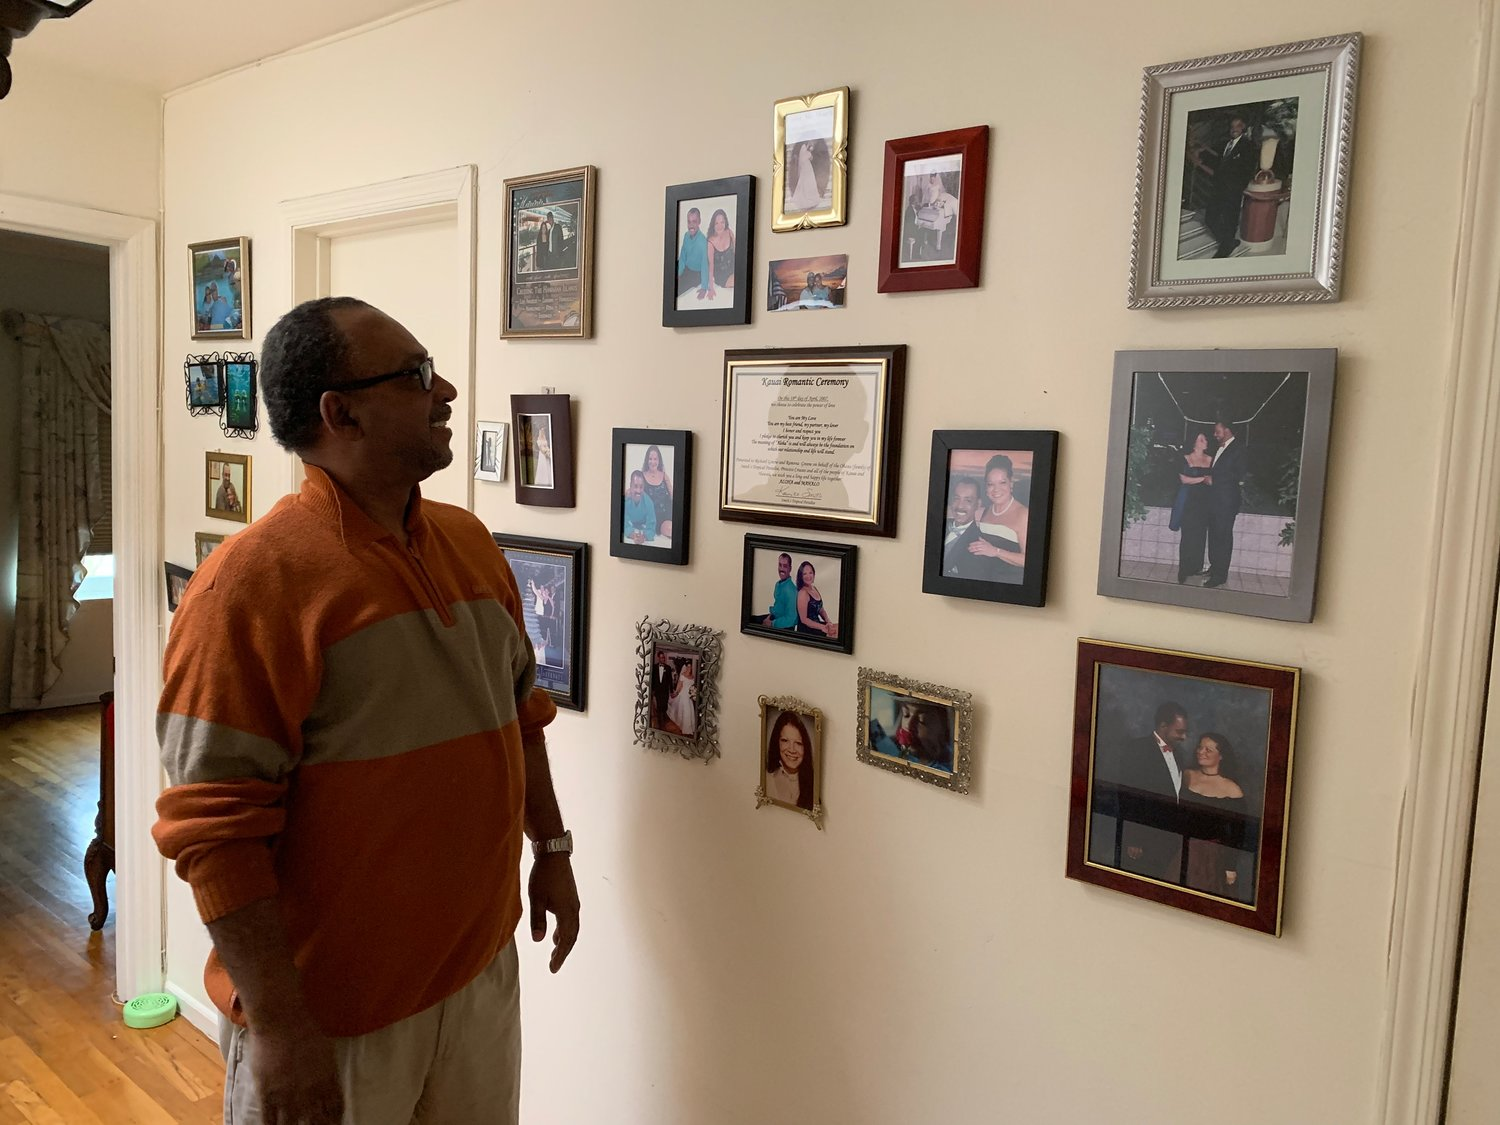 Richard Greene and Ramona Bobe-Greene decorated their home with photos and artwork so they could reminisce about their lives together.